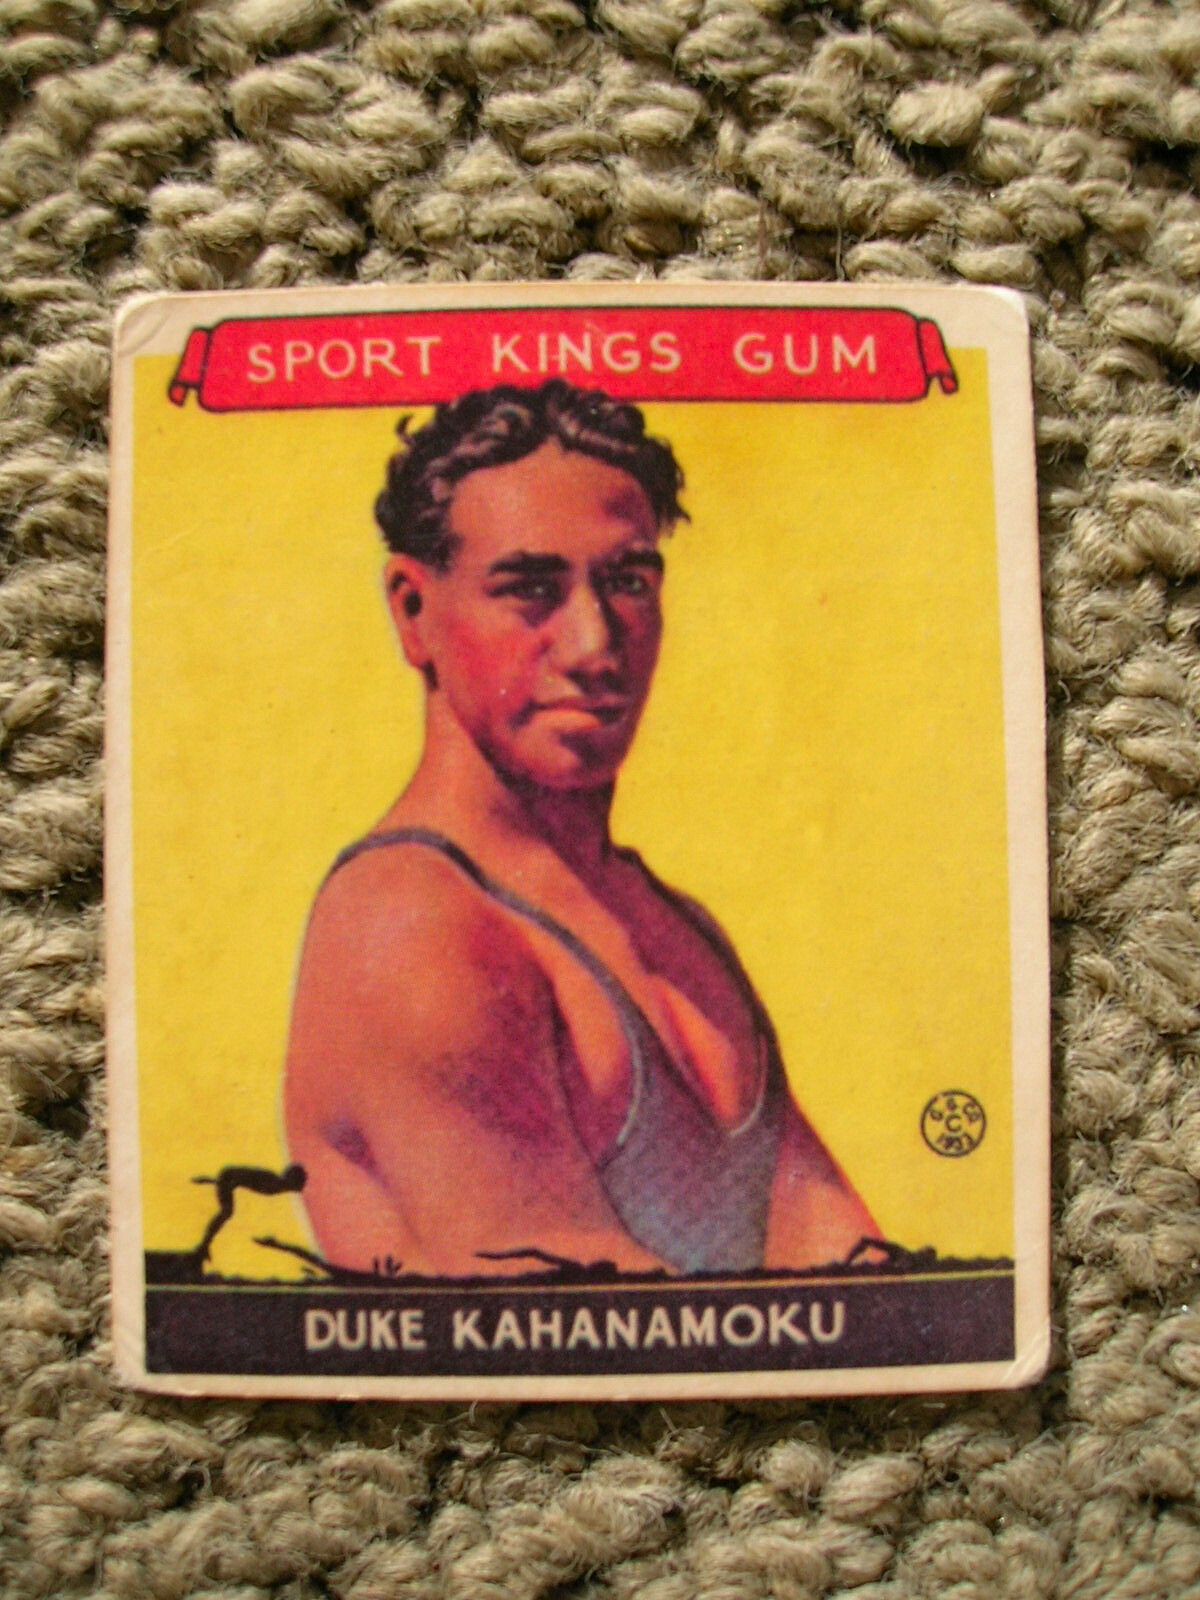 Duke Kahanamoku 1933 sport kings gum card surfing surfboard surfer surf